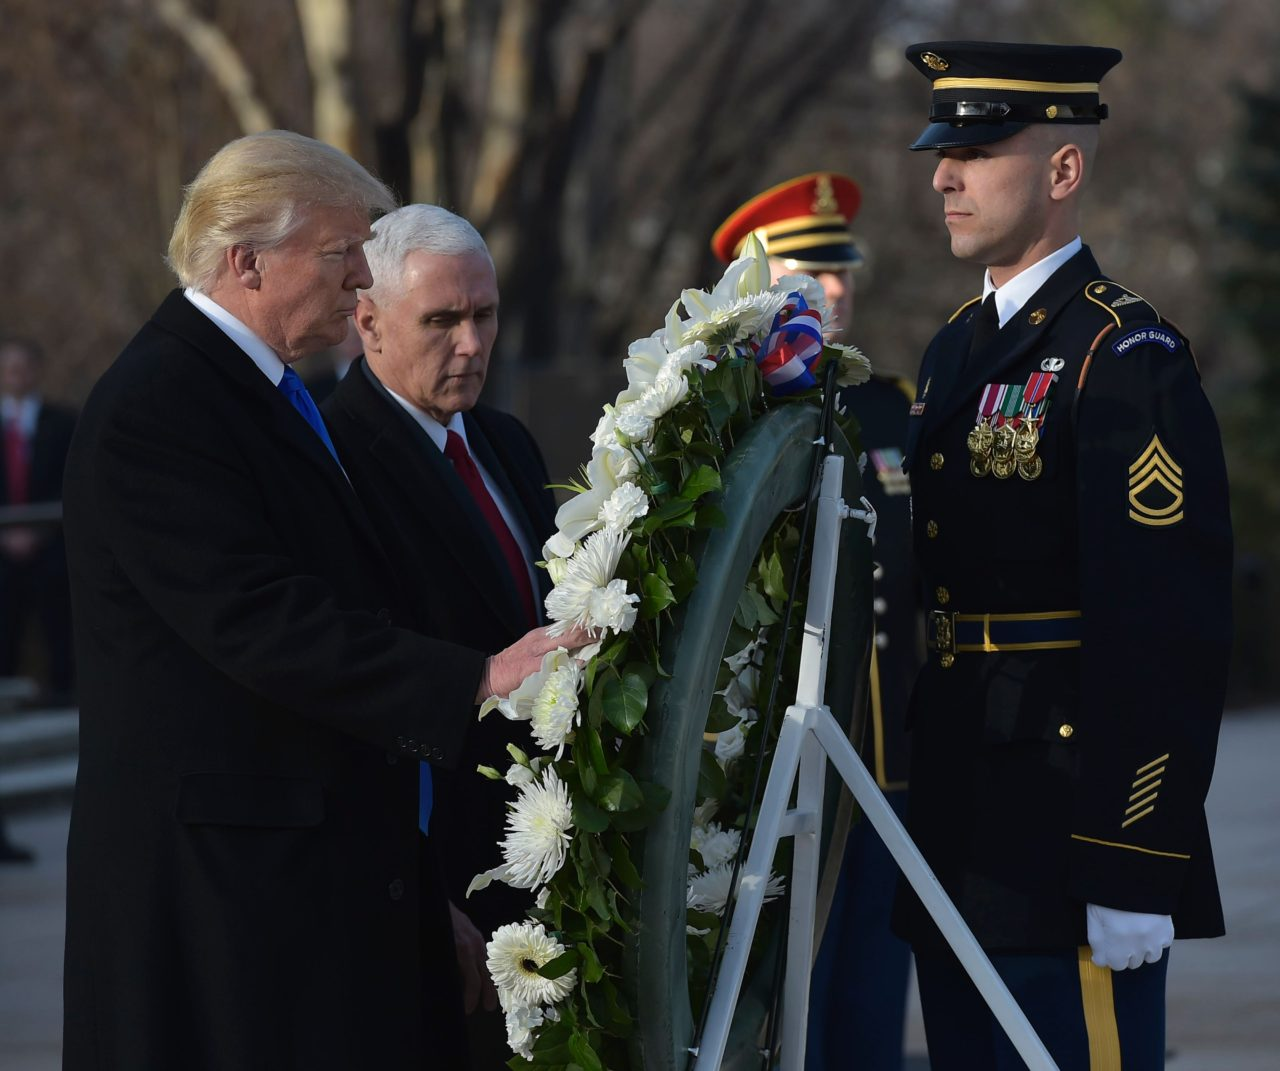 US President-elect Donald Trump and Vice President-elect Mike Pence take part in a wreath-laying ceremony at Arlington National Cemetery in Arlington,Virginia, on January 19, 2017. (Photo: MANDEL NGAN/AFP/Getty Images)